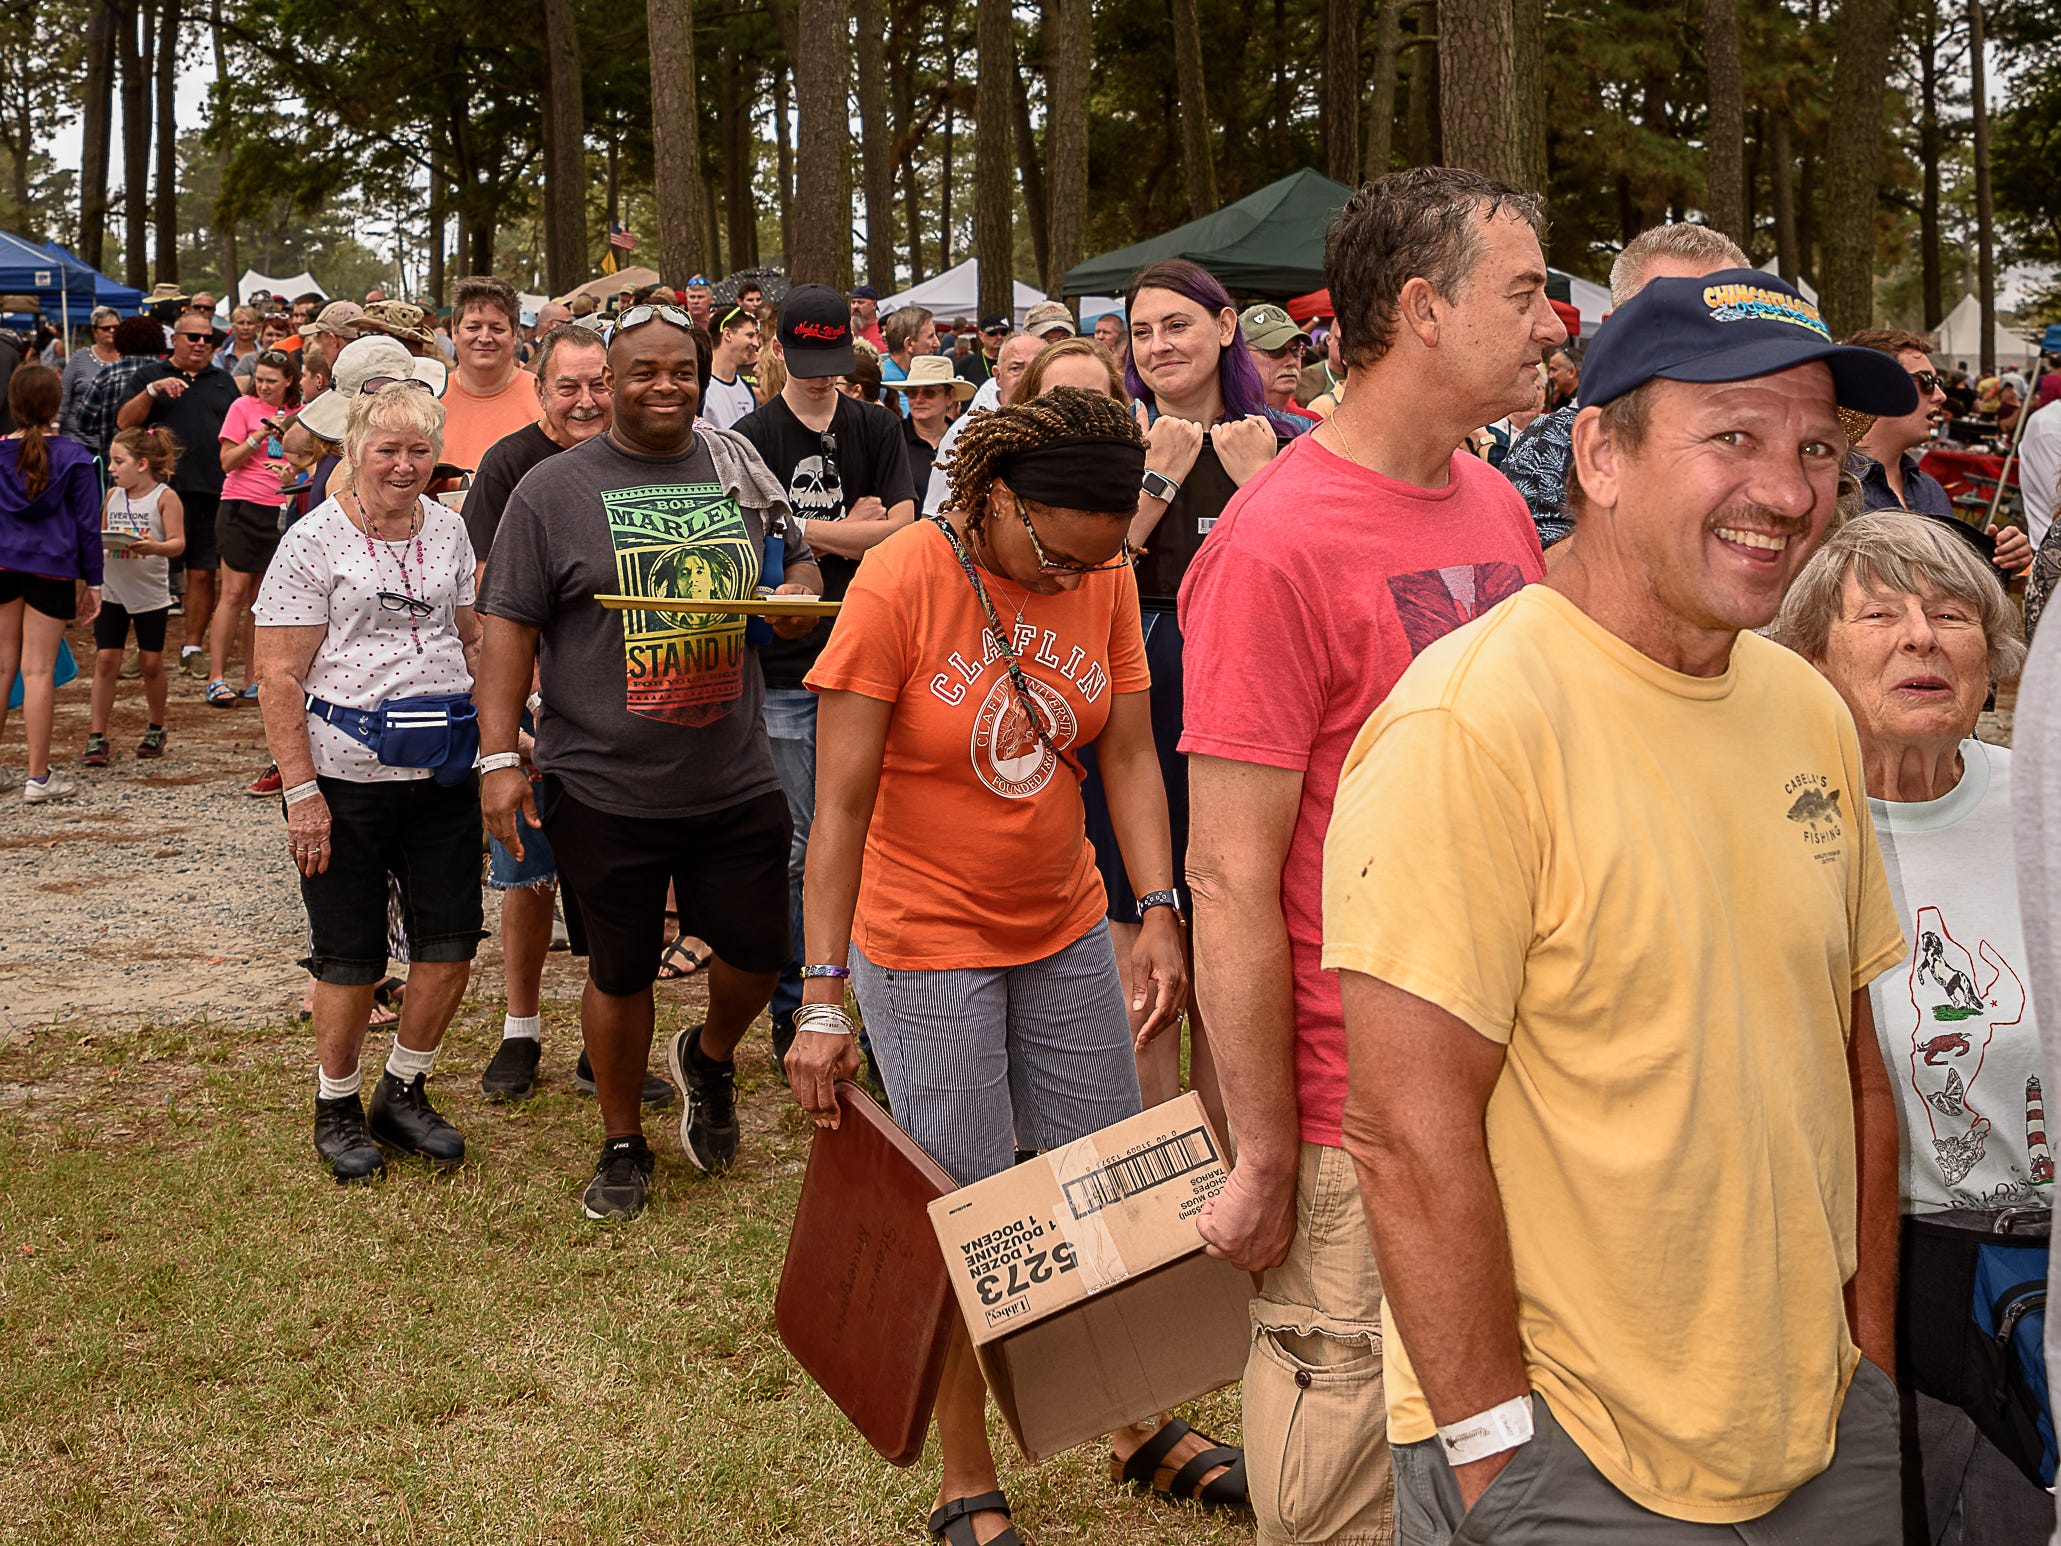 Festival-goers wait in the line for freshly shucked oysters at the Chincoteague festival.